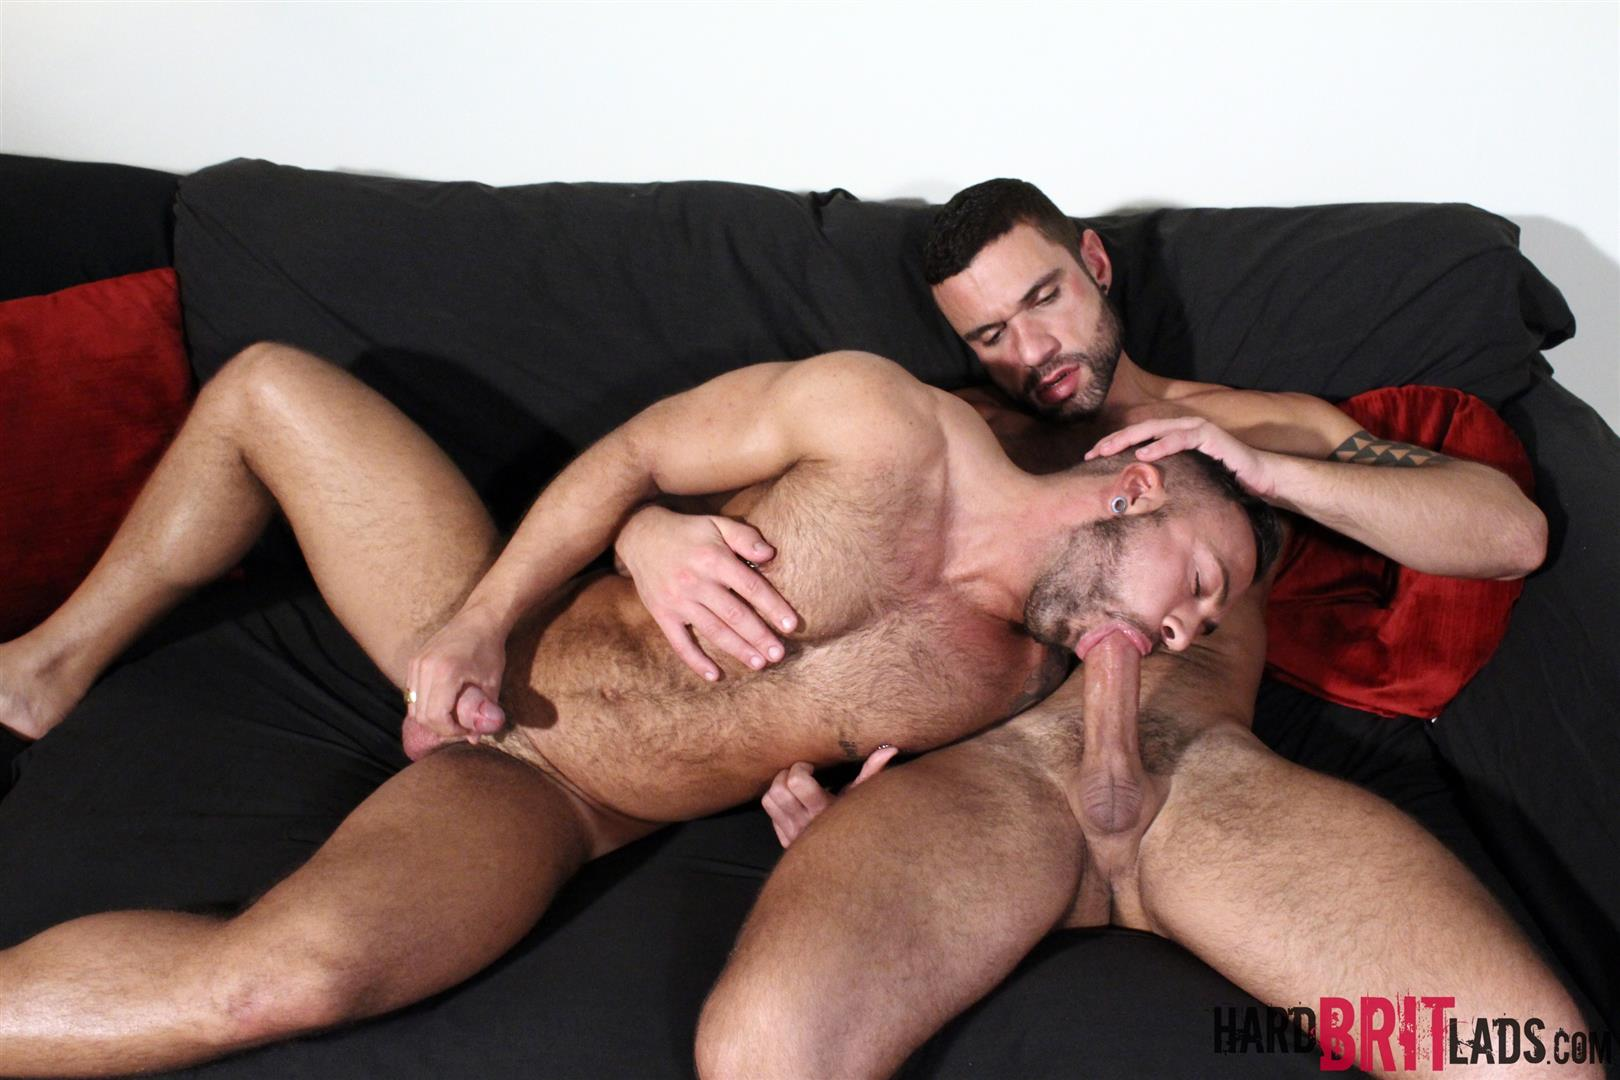 Hard Brit Lads Sergi Rodriguez and Letterio Amadeo Big Uncut Cock Fucking Amateur Gay Porn 12